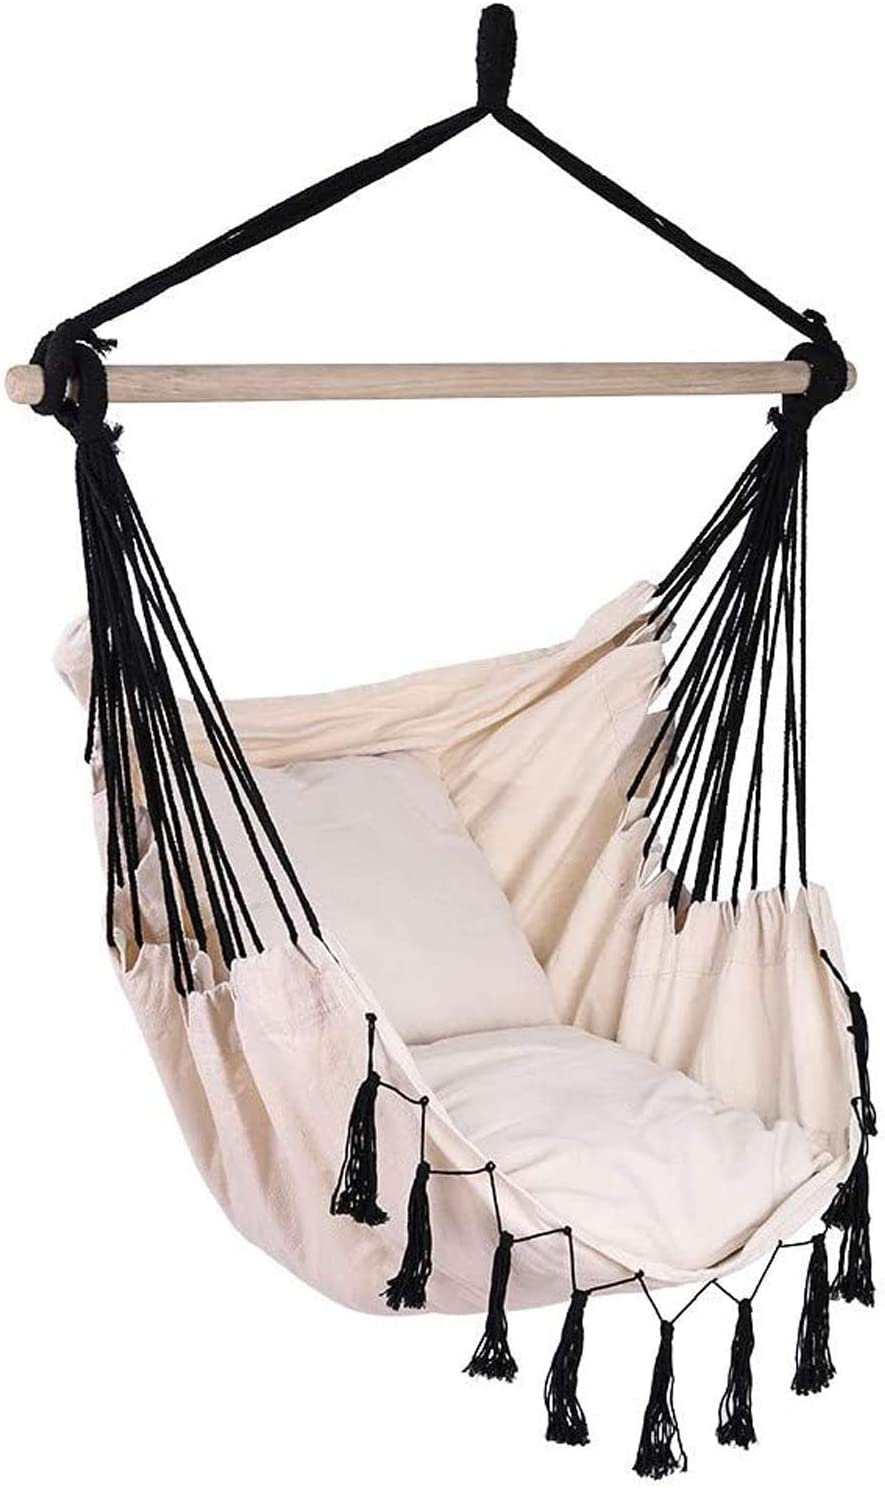 Ranking TOP5 Hanging Super sale period limited Rope Hammock Chair Swing Seat- Soft-Spun 264 Max - Lbs C